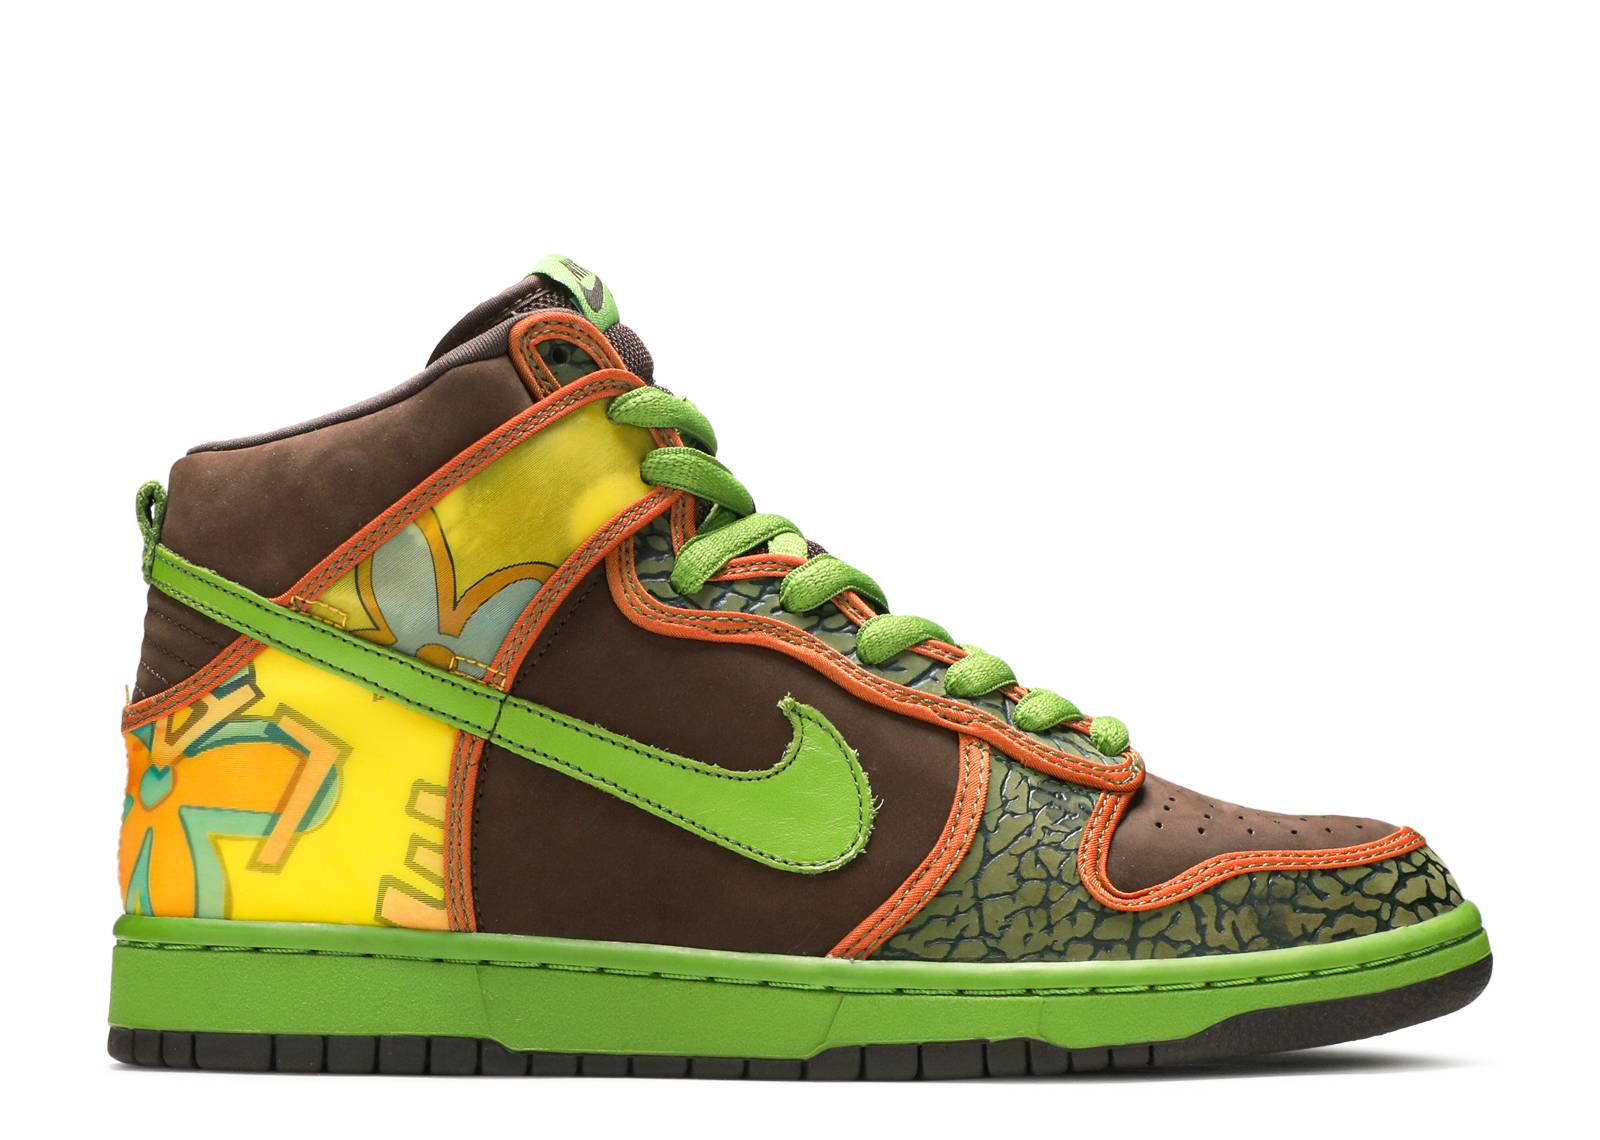 dunk high pro sb de la soul nike 305050 231. Black Bedroom Furniture Sets. Home Design Ideas